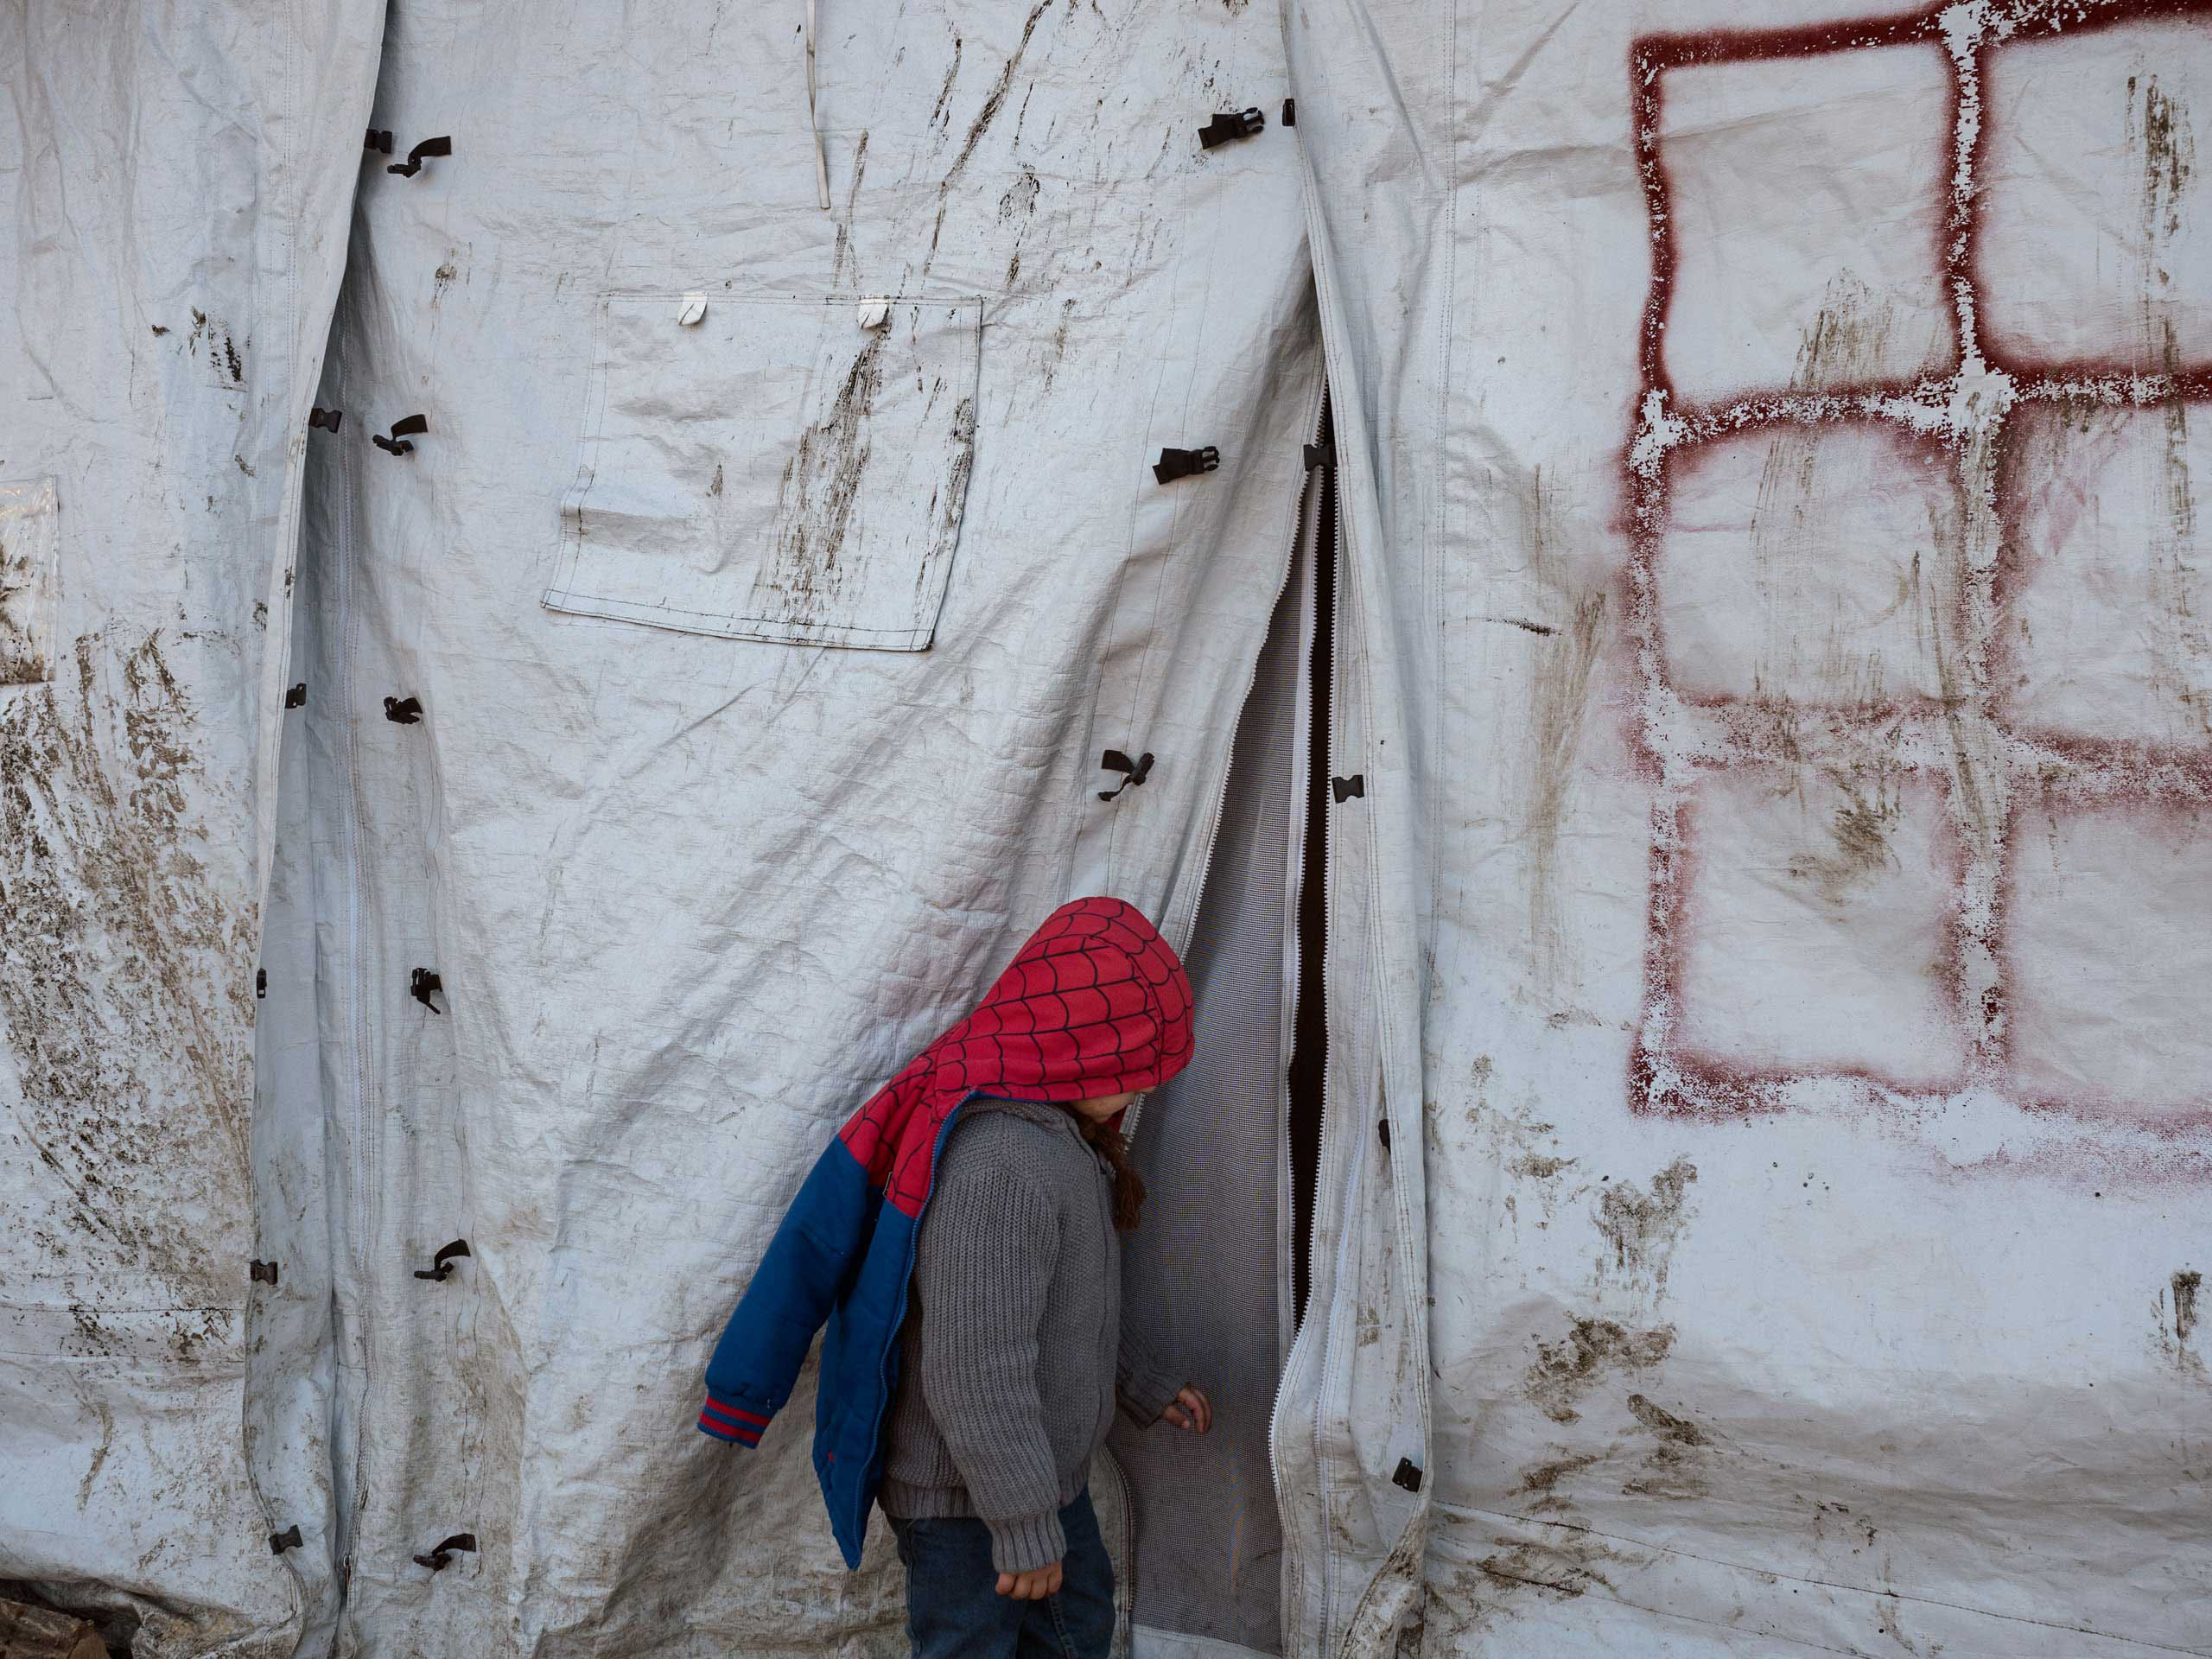 A boy wears a spider man jacket at the refugee camp in Grande-Synthe, near Dunkirk, France, which is accommodating over 2,500 refugees mostly families from Kurdistan, Jan. 19, 2016.